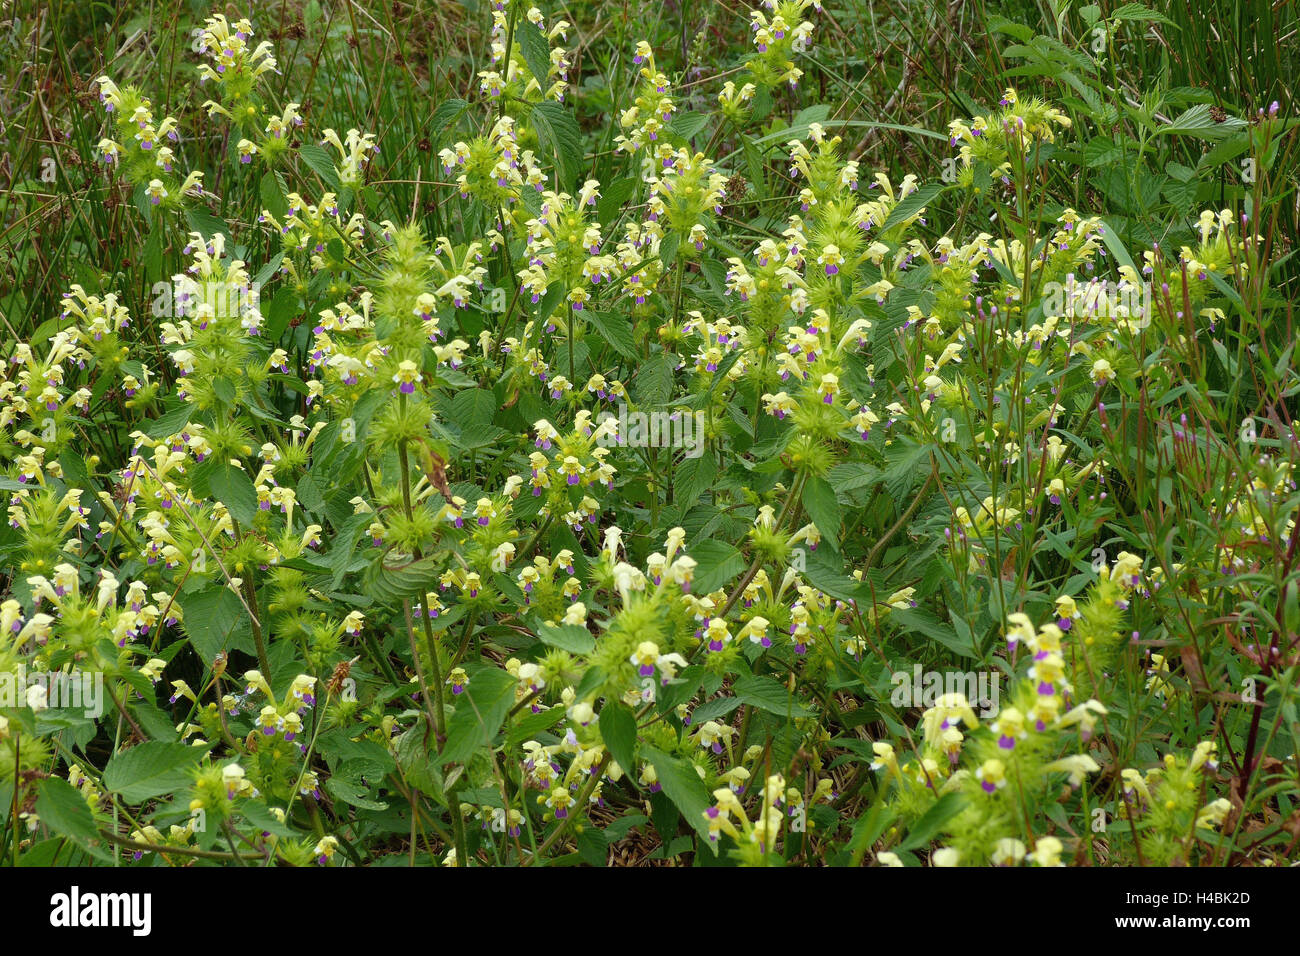 Blossoms of the large-flowered hemp-nettle on a debris surface, galeopsis speciosa, - Stock Image